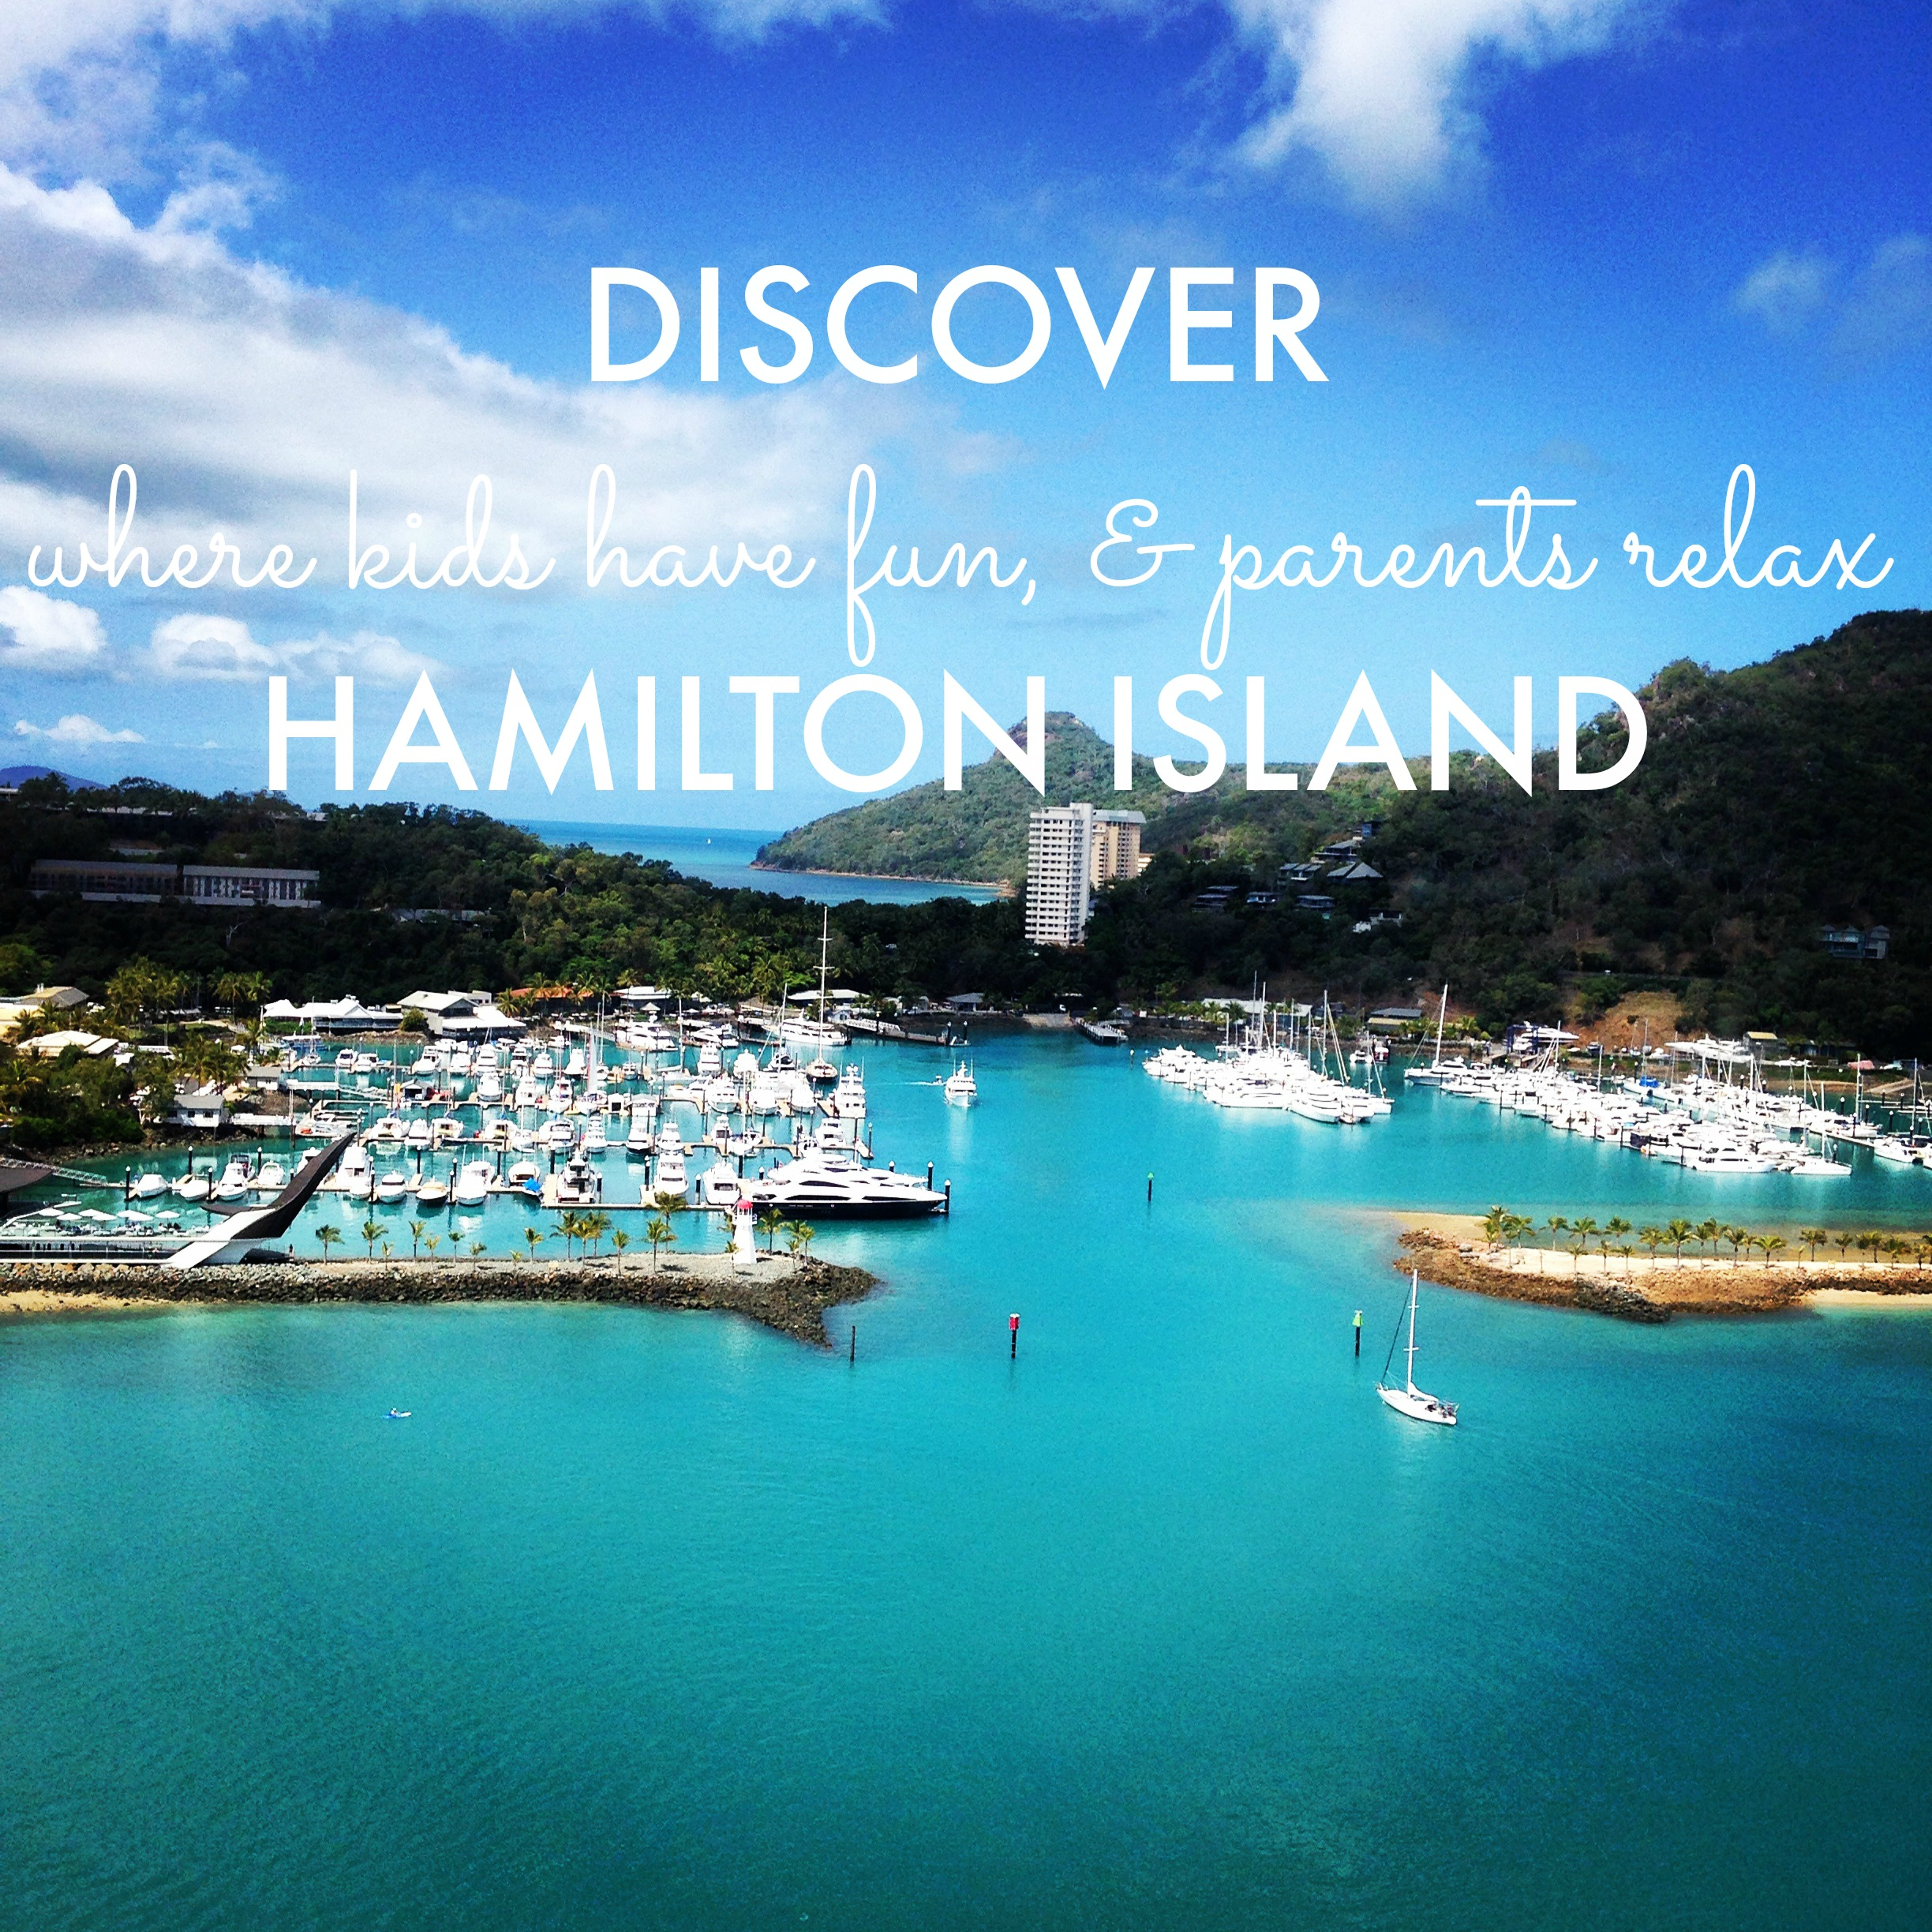 Hamilton Island: Family Holiday On Hamilton Island